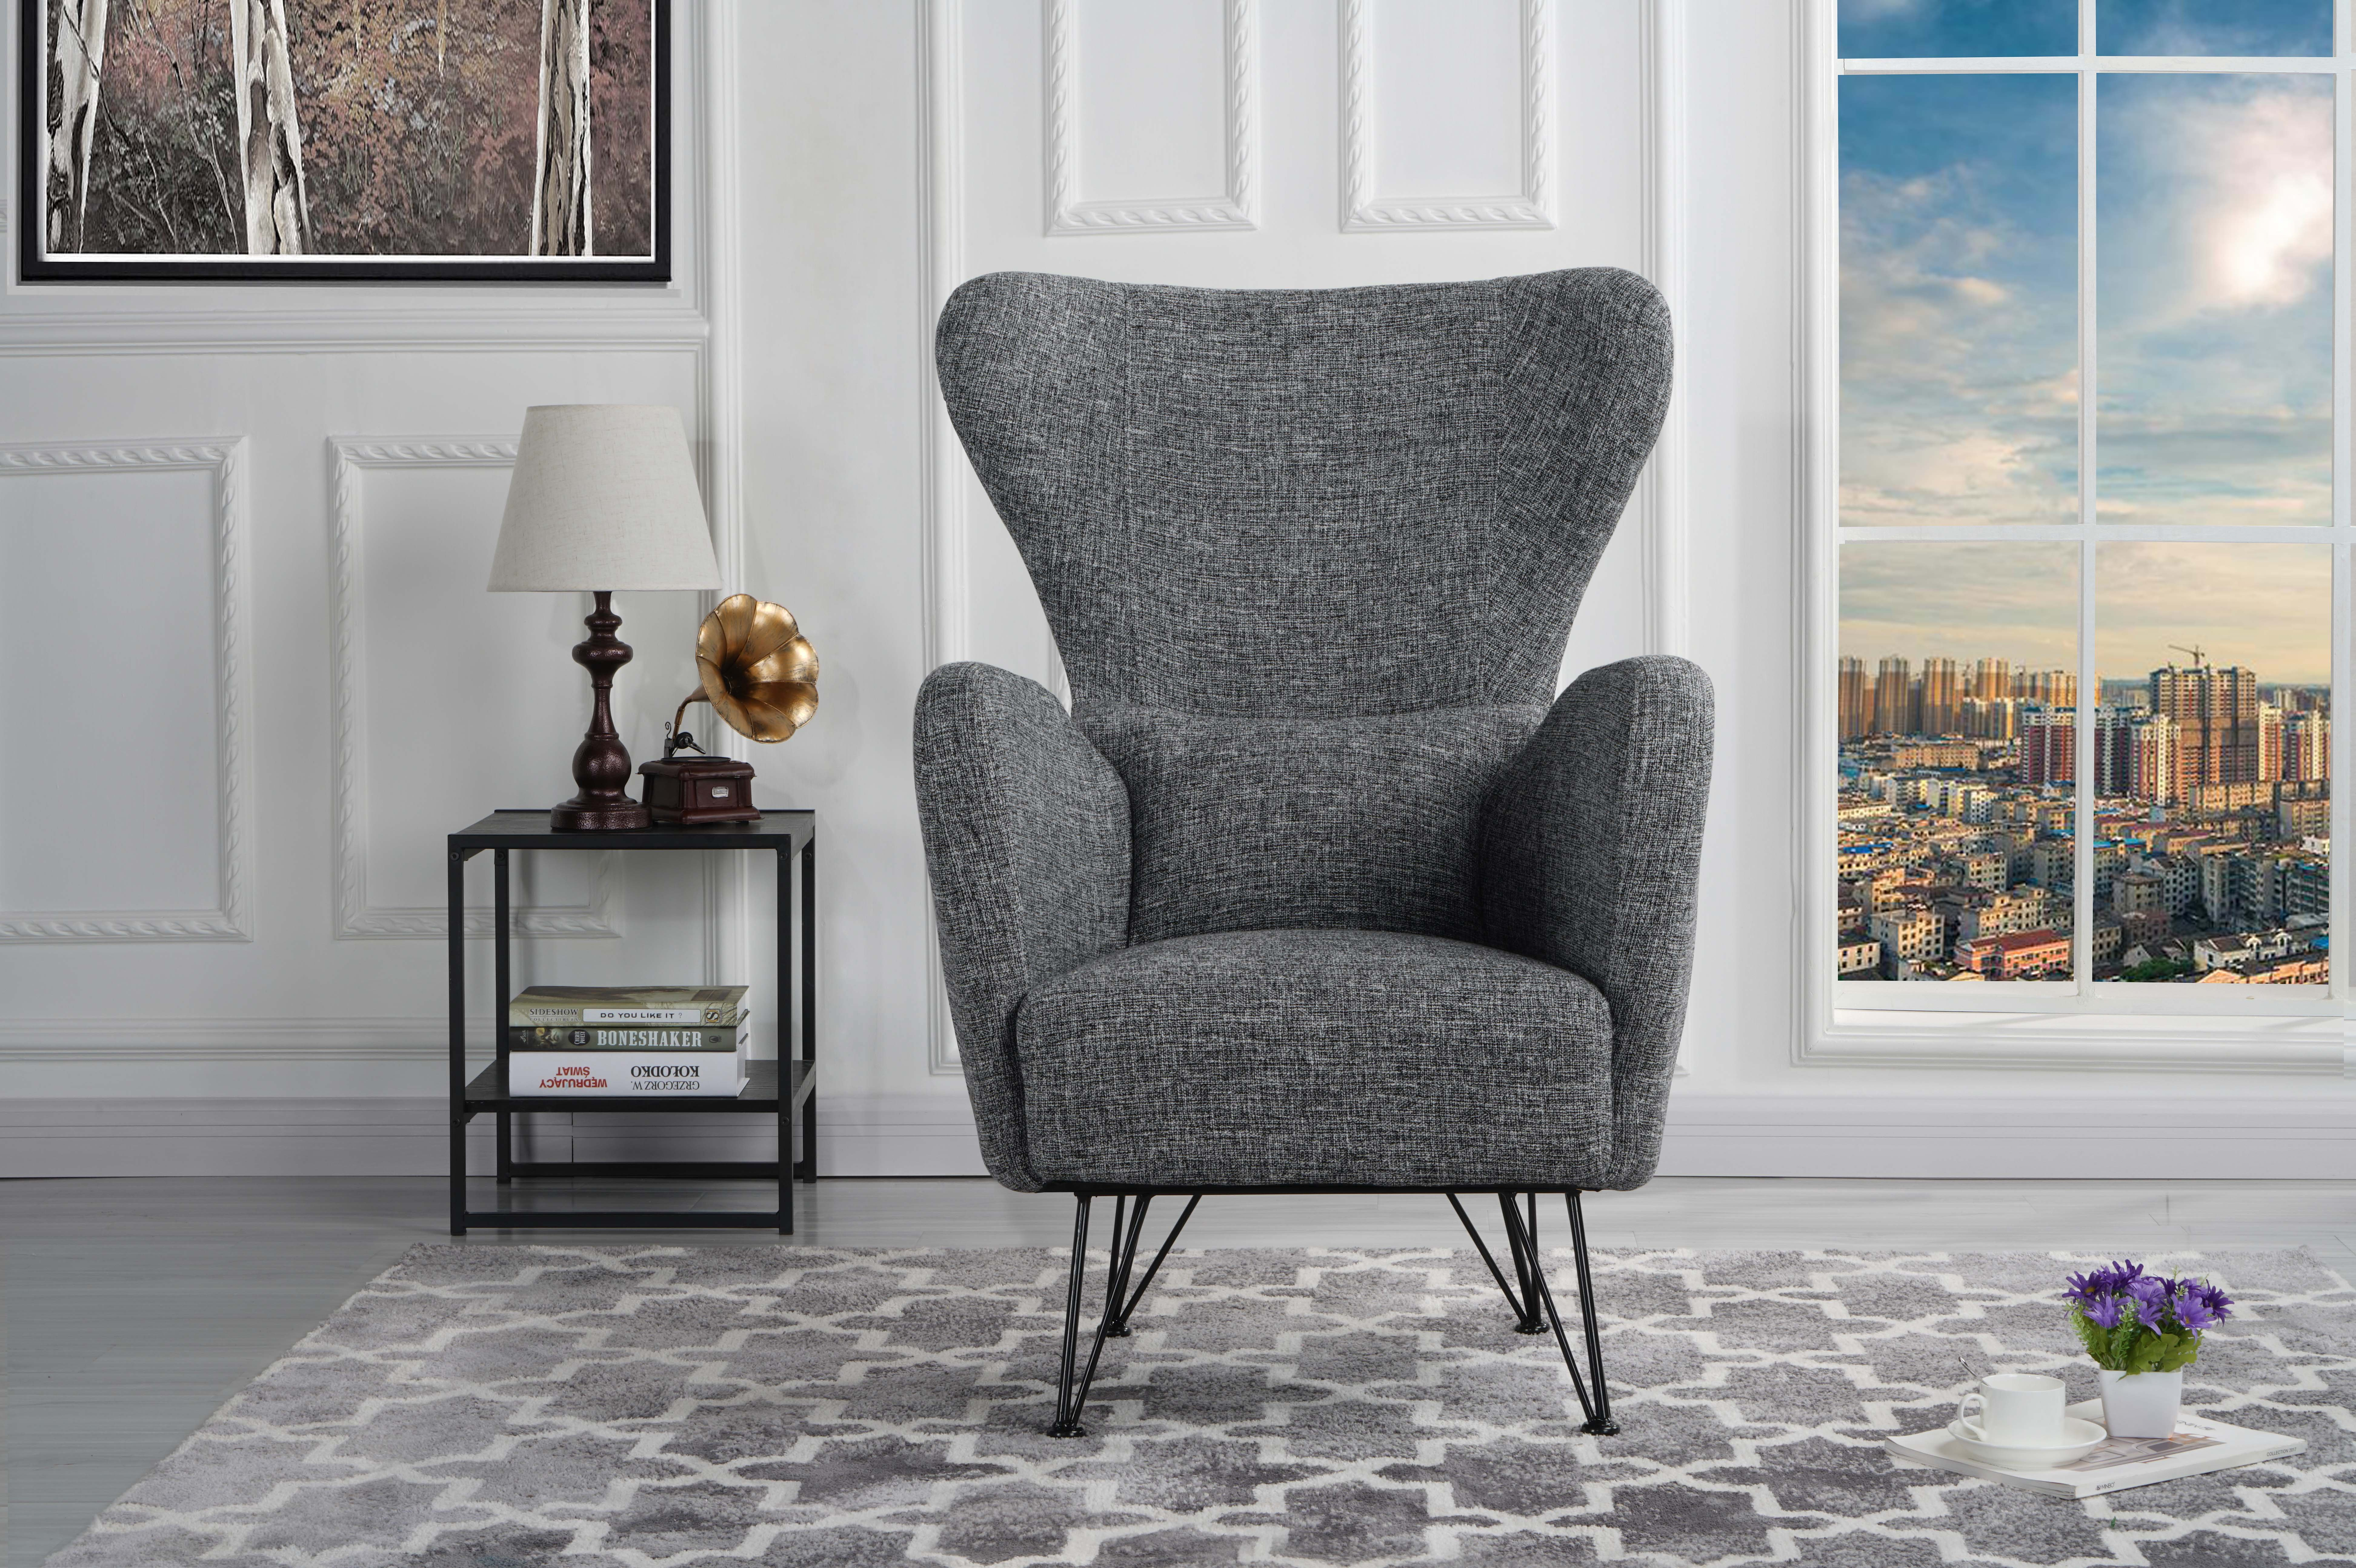 Details About Mid Century Modern Fabric Accent Armchair With Shelter Style  Chair, Light Grey